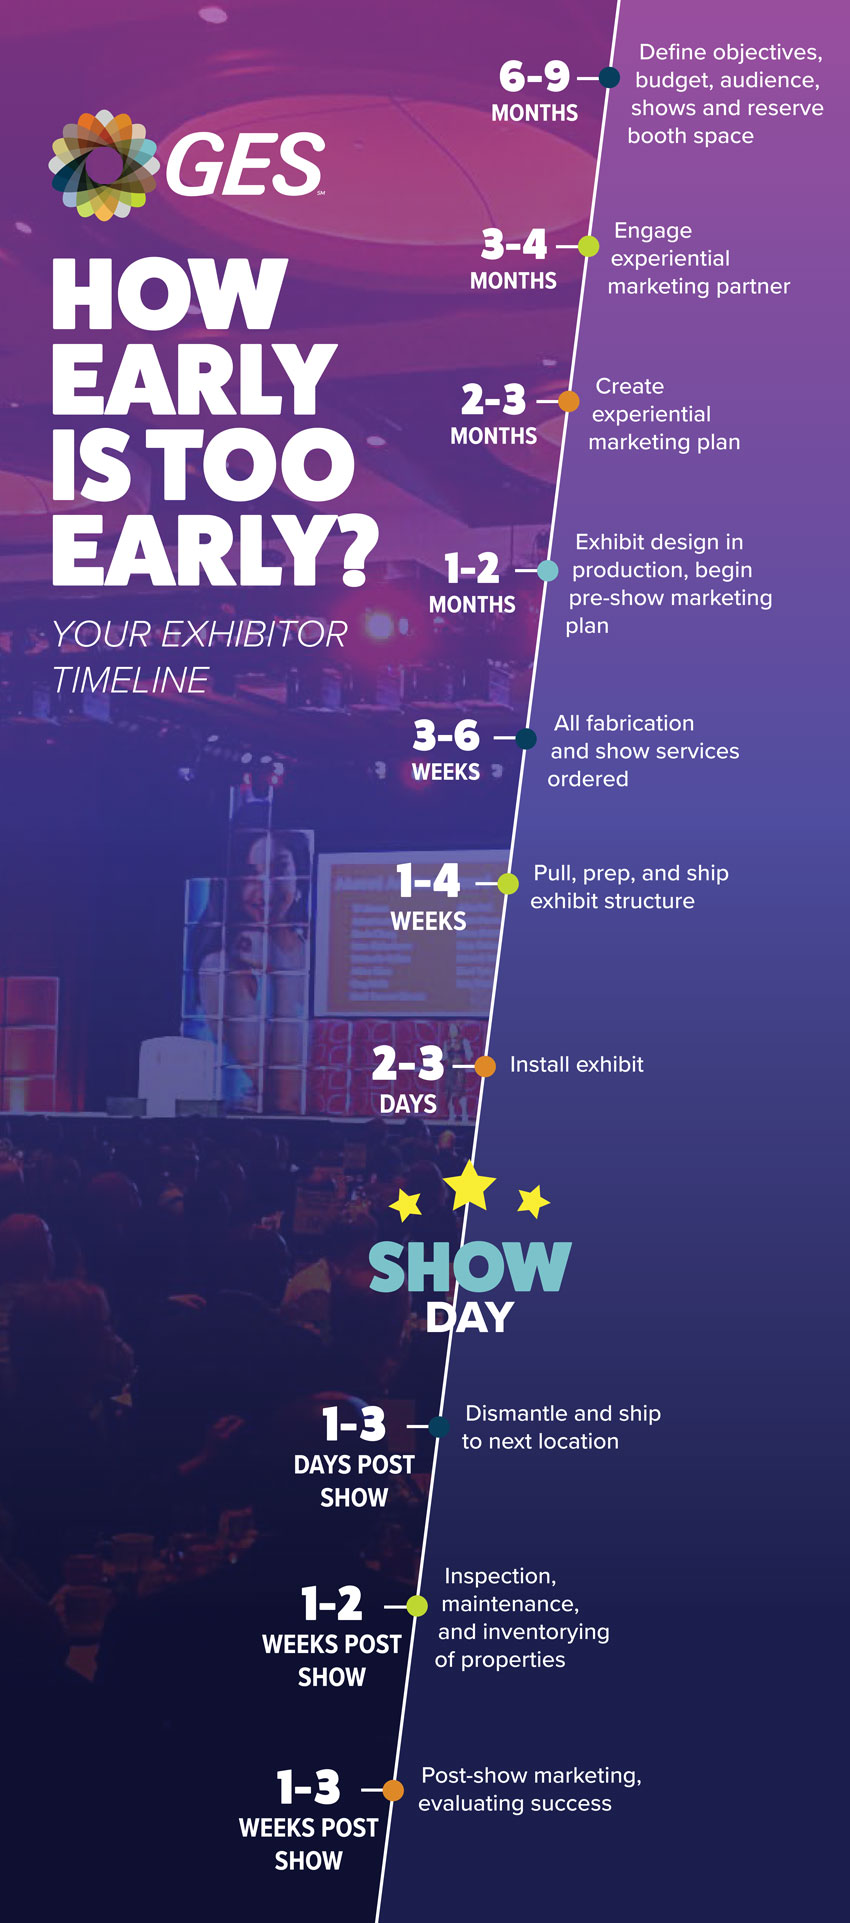 How Early is too Early? Your Exhibitor Timeline